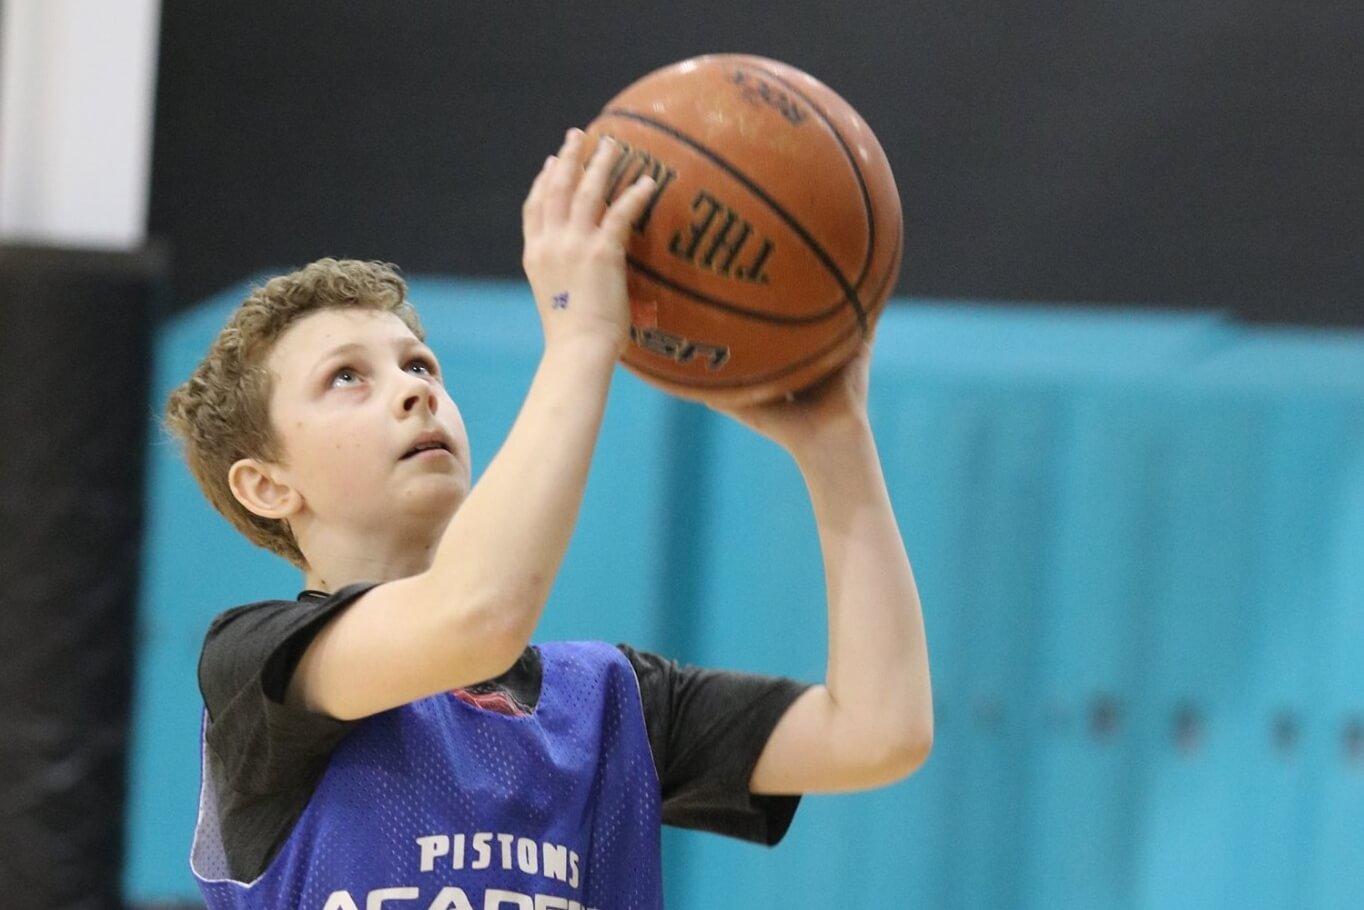 Pistons Academy Youth Basketball